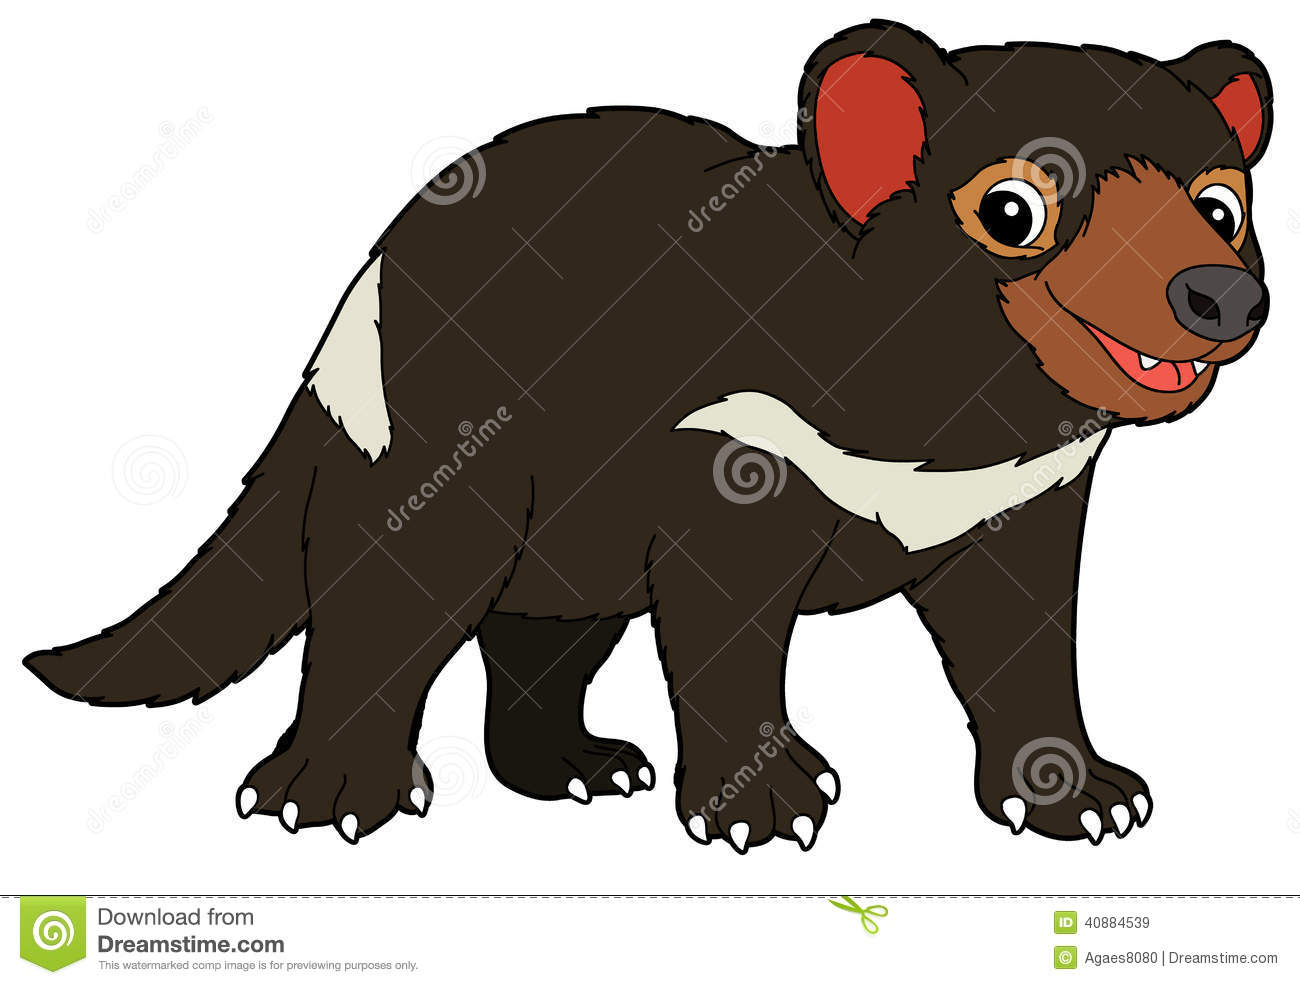 Tasmanian devil clipart clipground - Tasmanian devil cartoon images ...